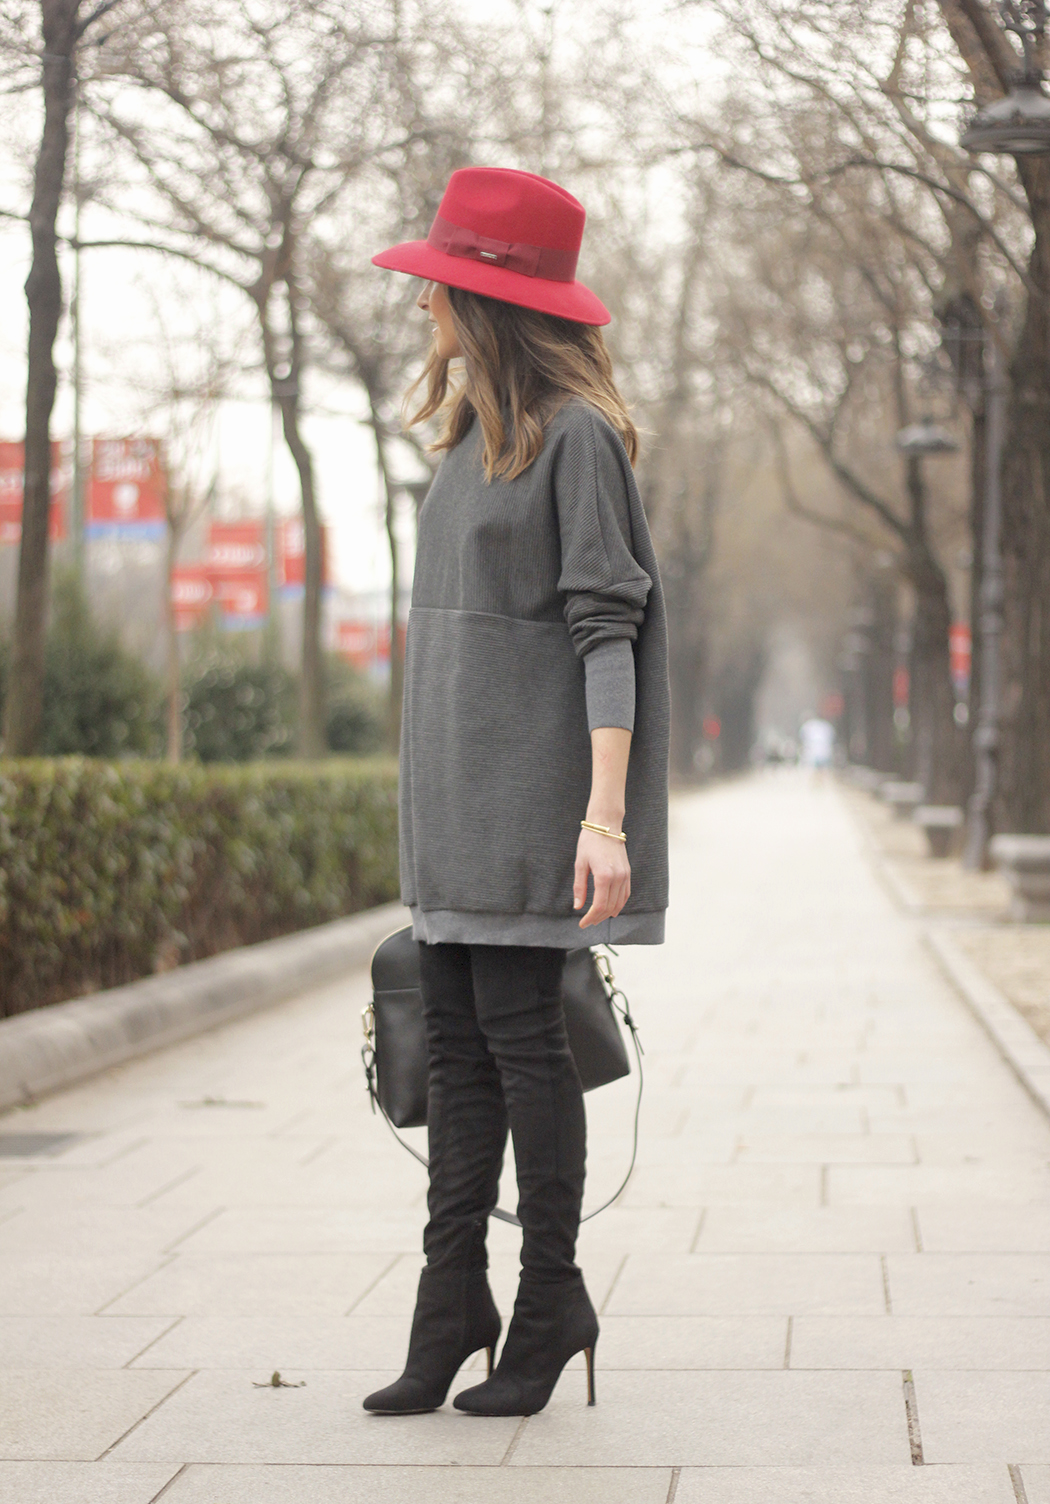 knit dress sheinside over the knee boots mango outfit style red hat uterqüe02